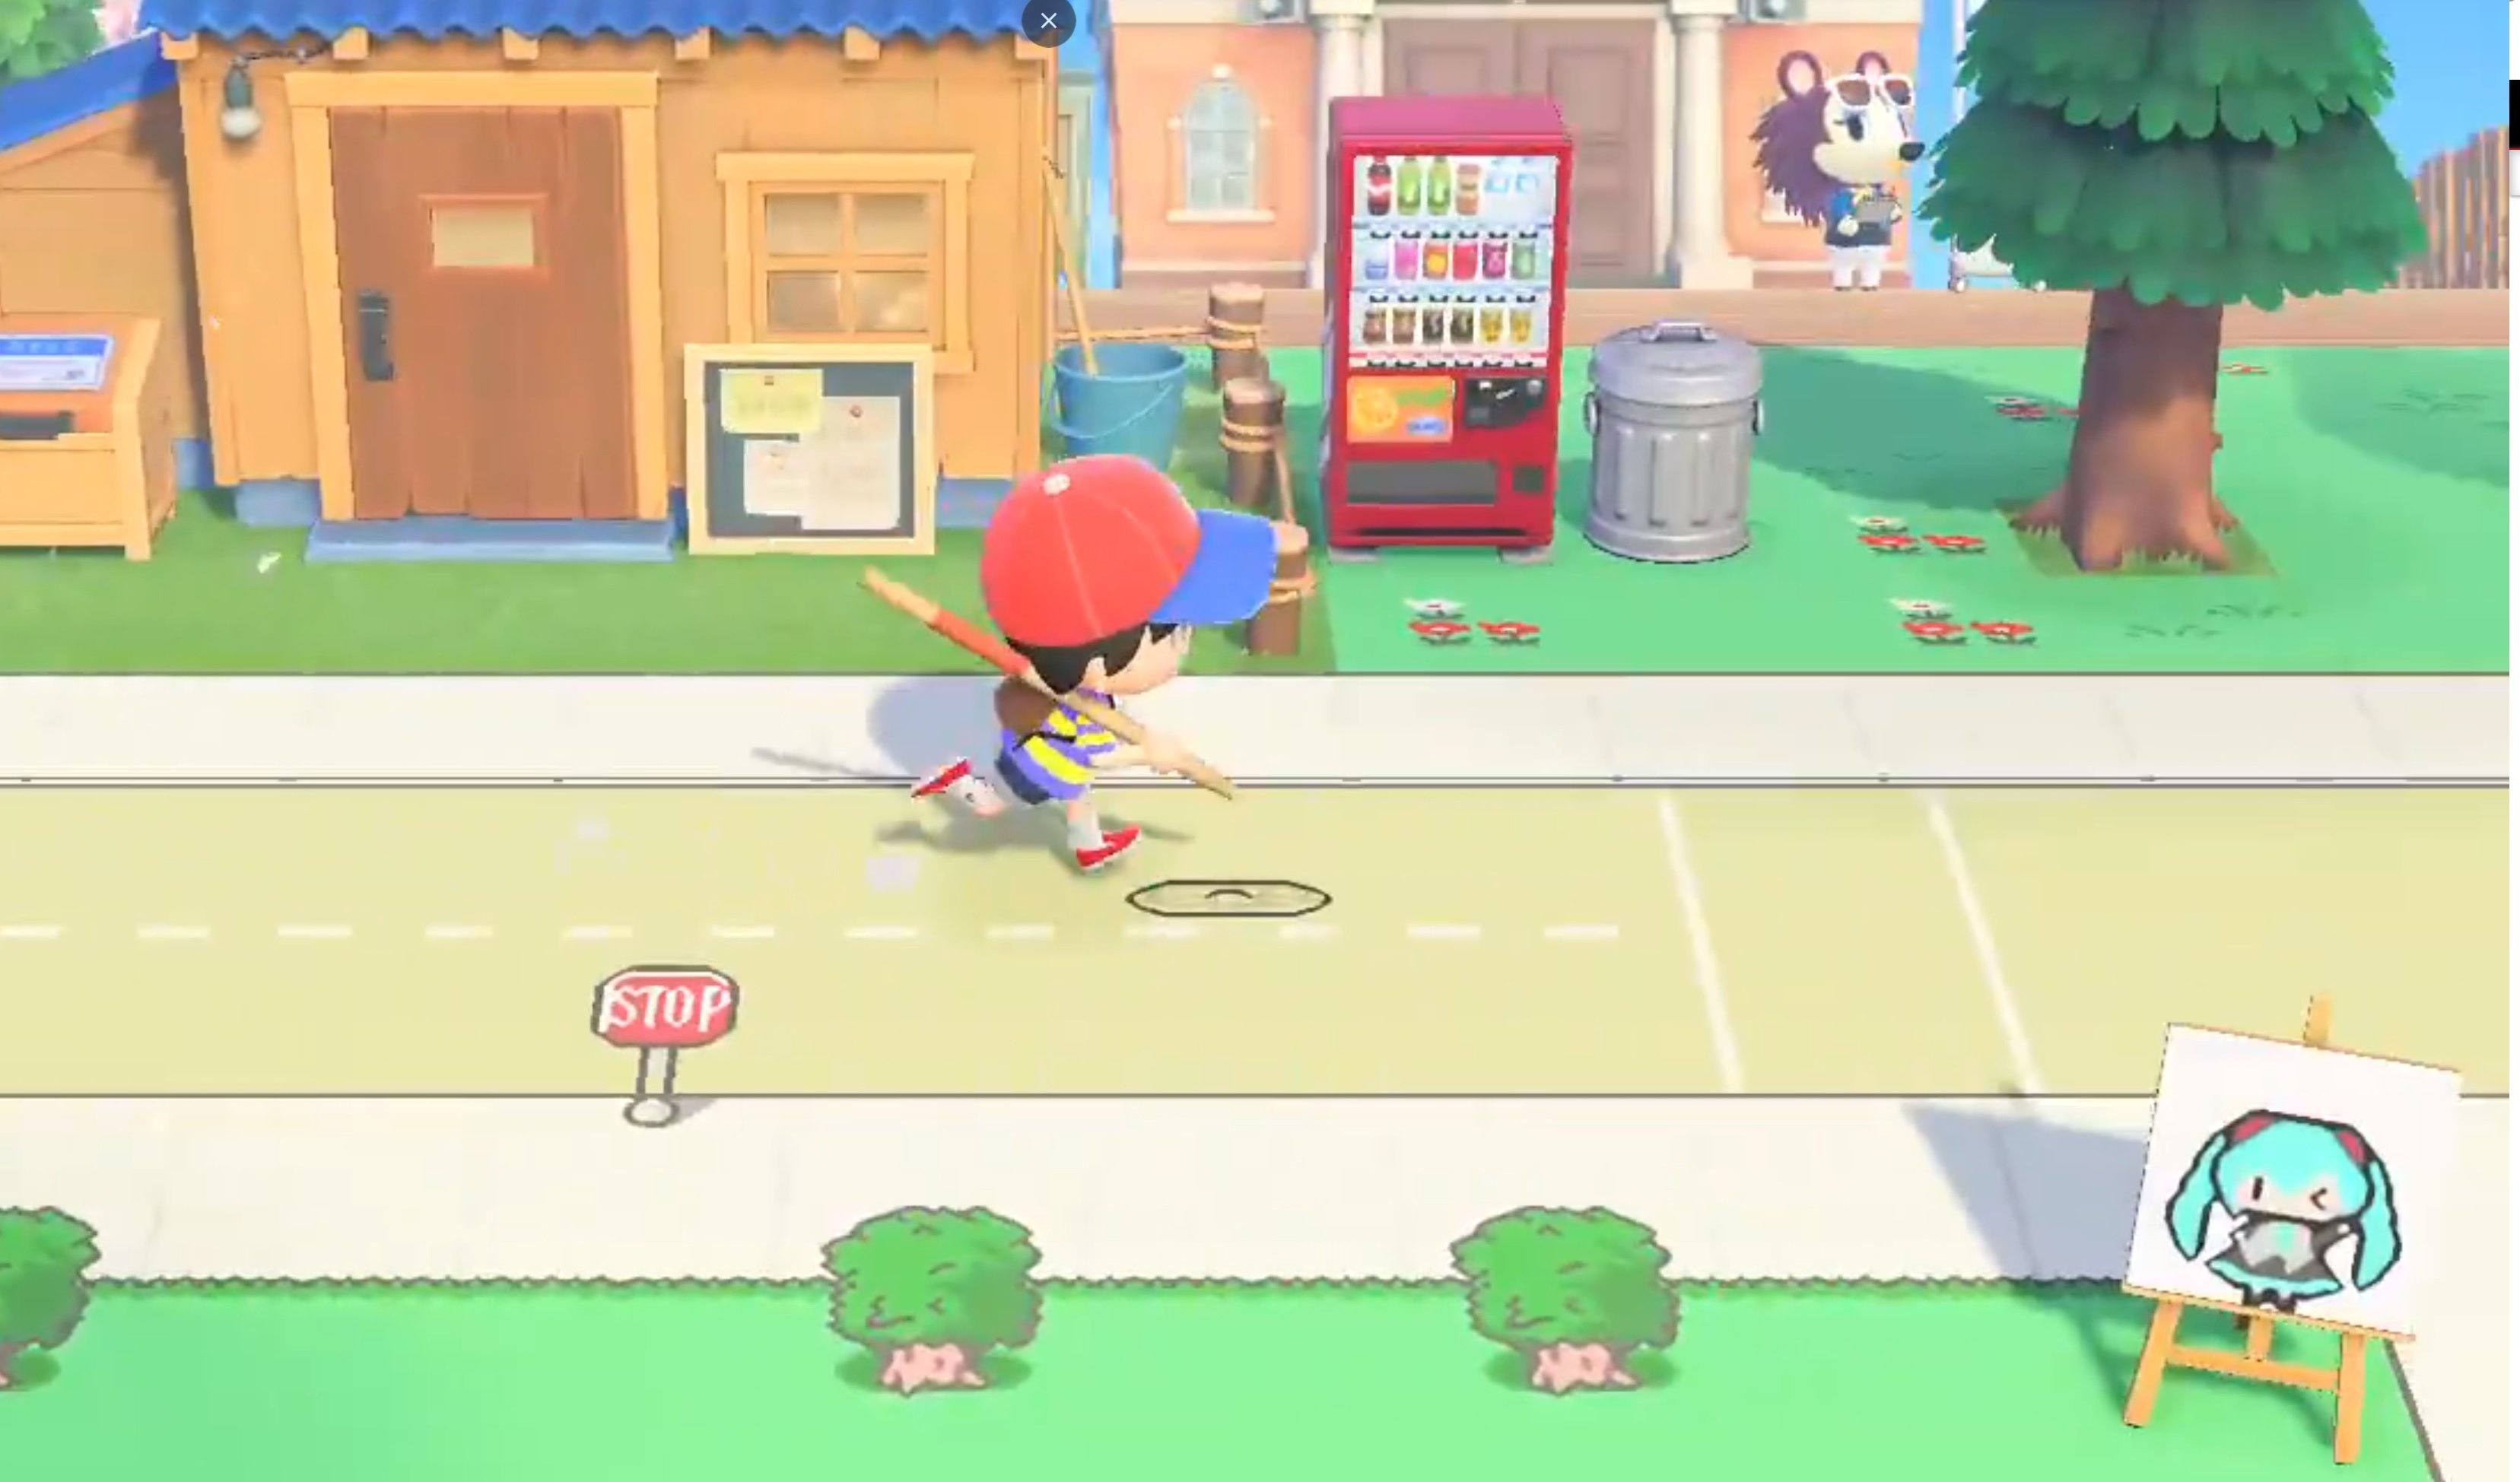 This EarthBound Recreation In Animal Crossing: New